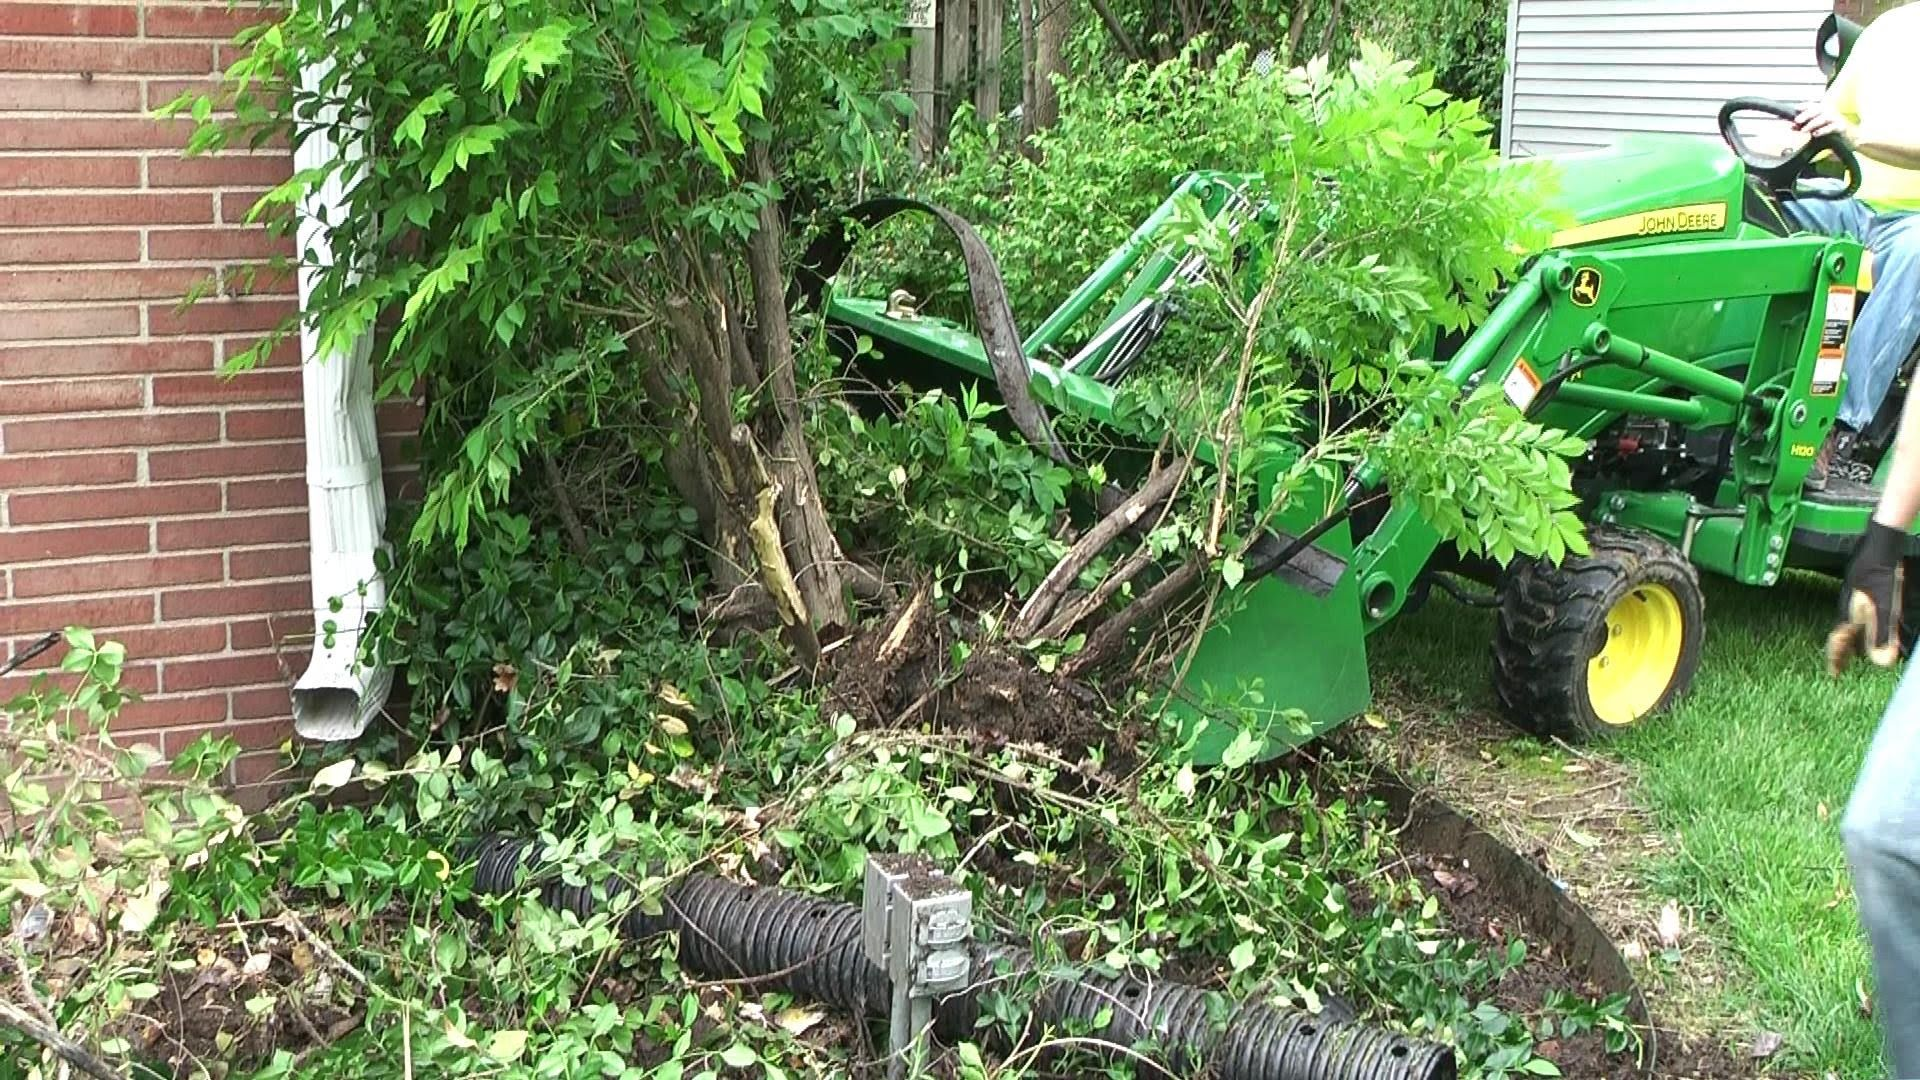 Heavy Hitch Tooth Bar on John Deere 1025r digs up bushes